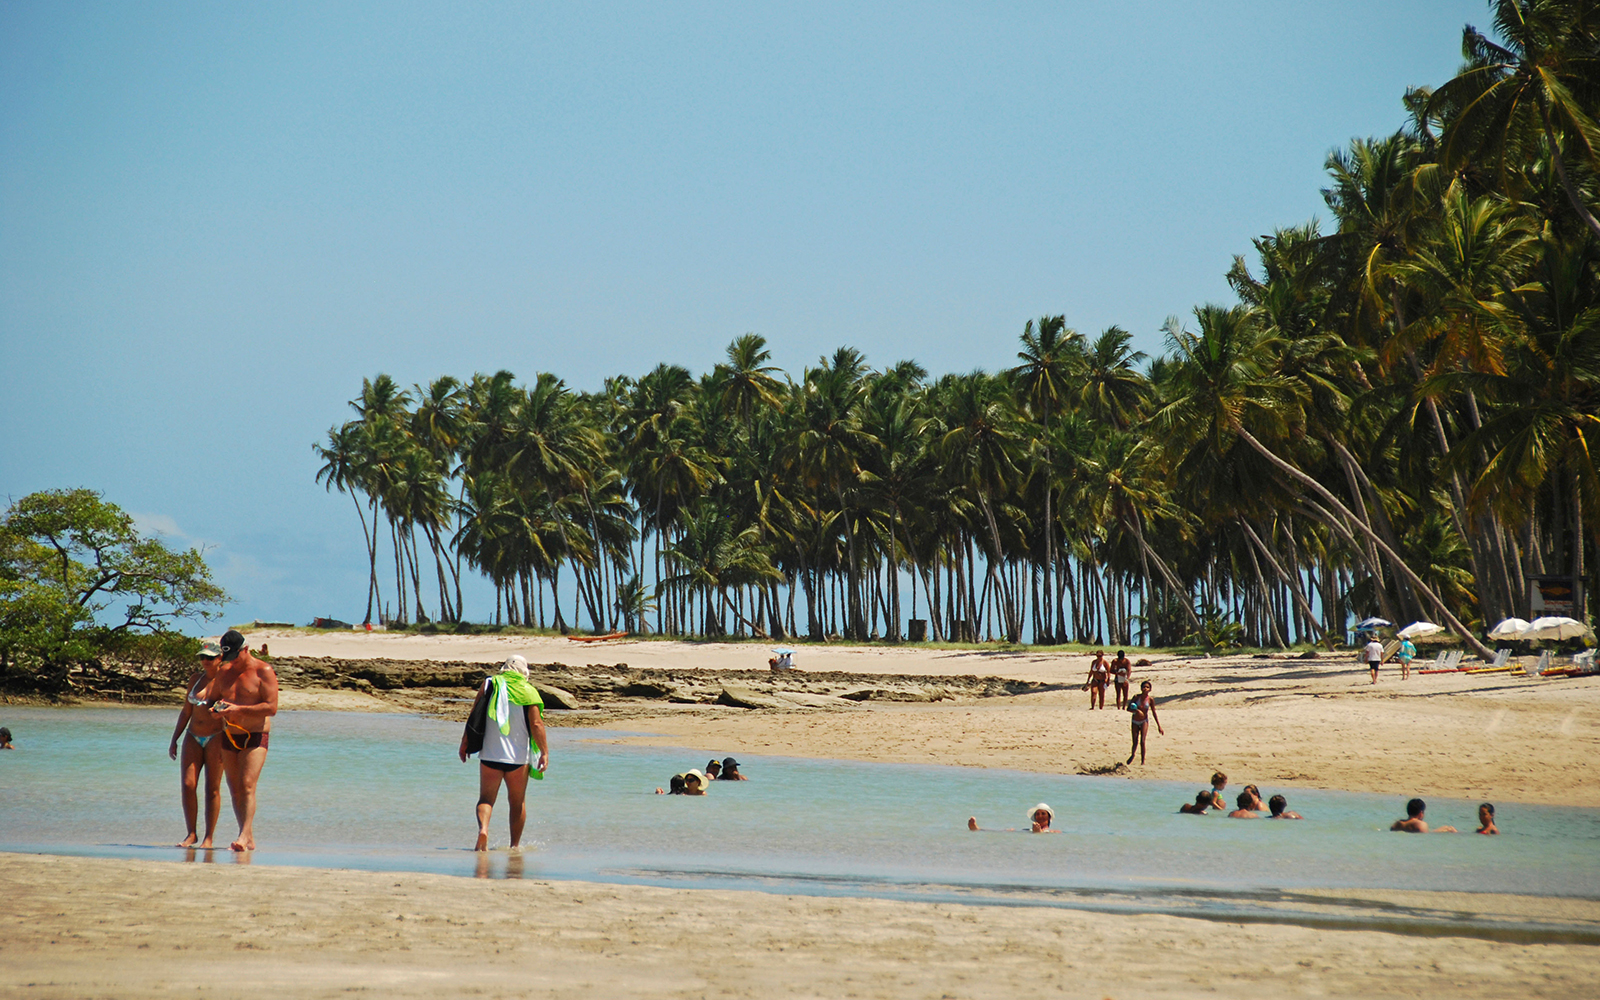 CT4KH1 Brazil, Pernambuco, Praia dos Carneiros, tourists looking for natural pool fishes at low tide